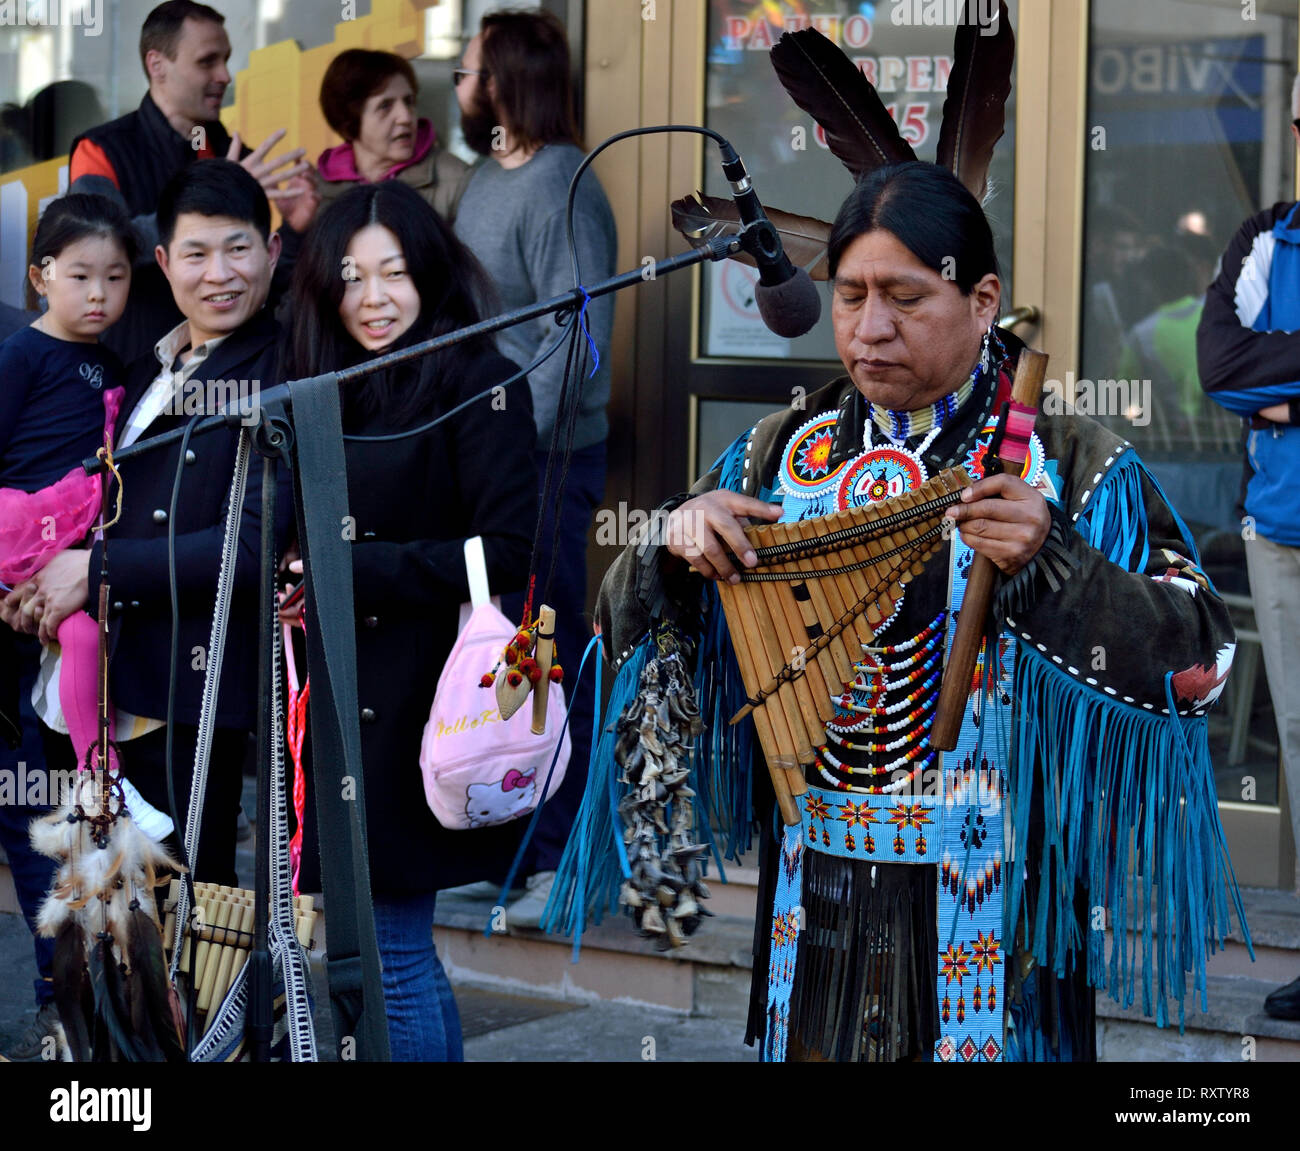 Chinese family watching indigenous pan flute performance during Slavic festival - Stock Image